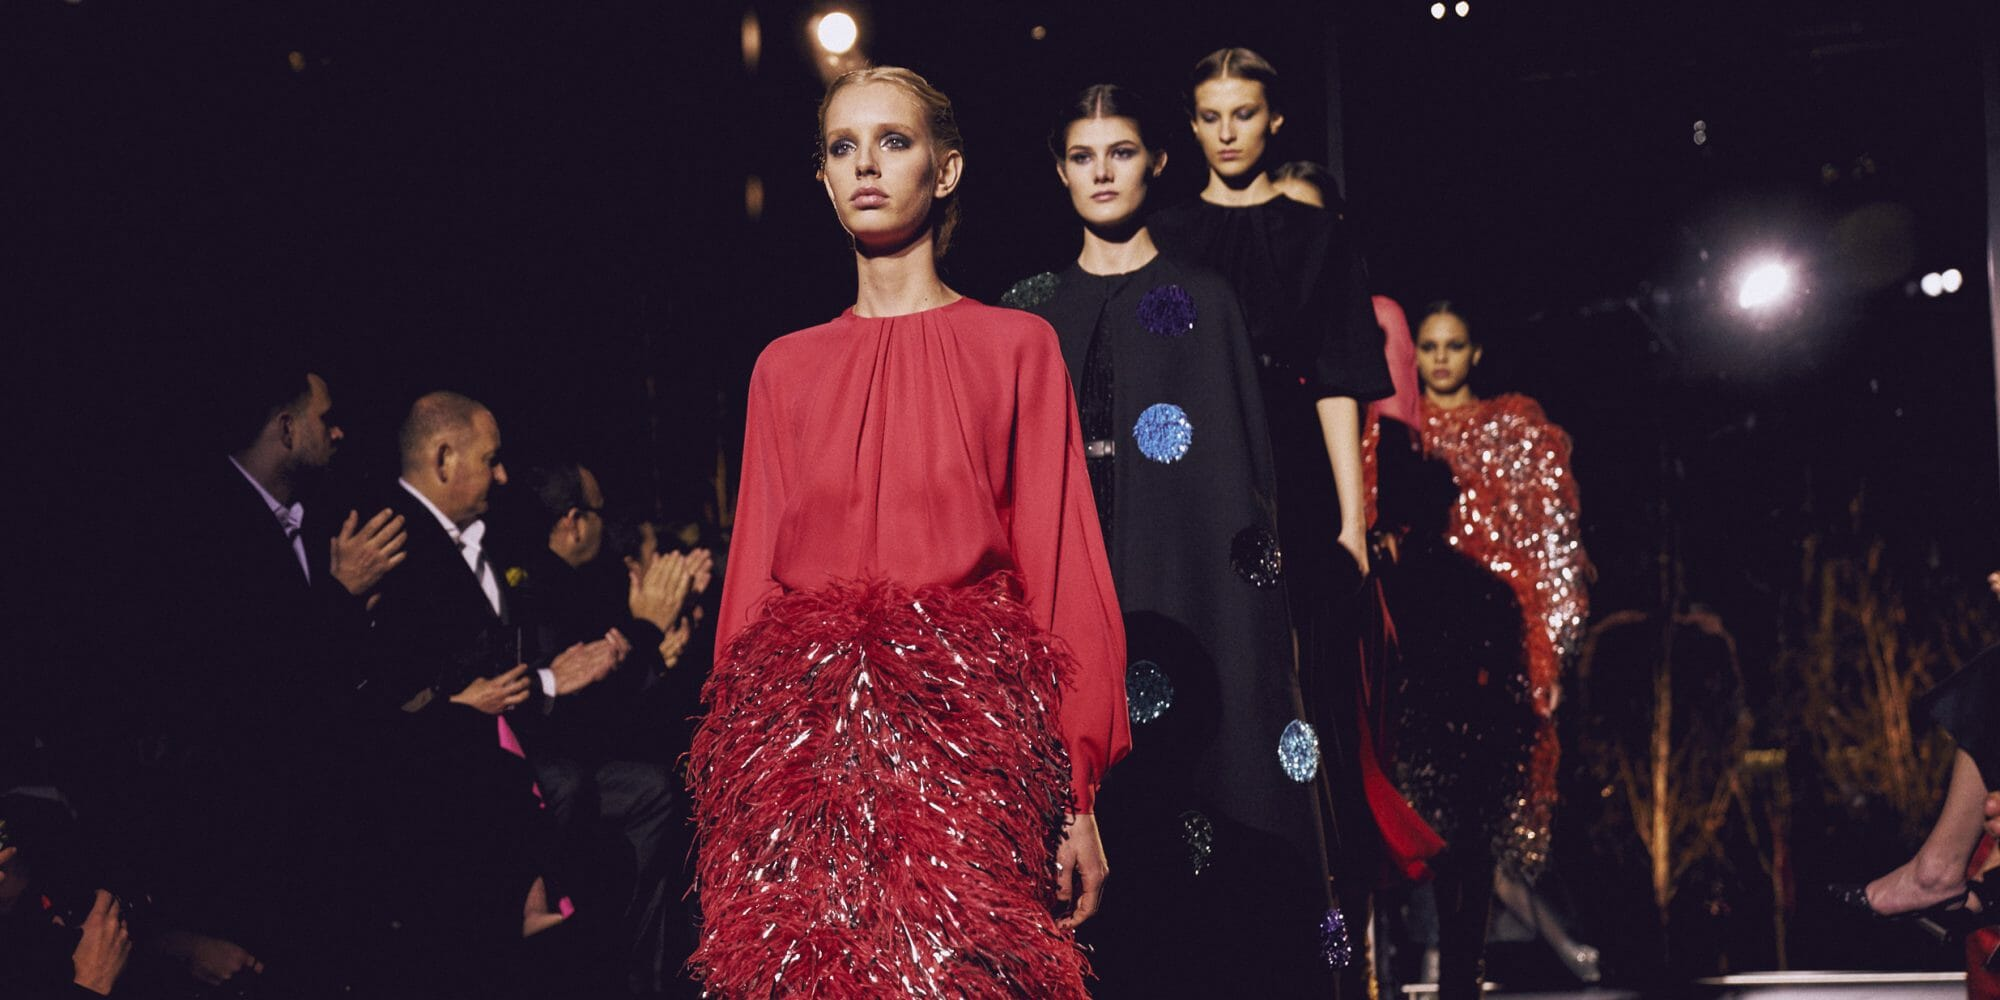 carolina-herrera-new-york-fall-2018-runway-show-homepage-banner-image